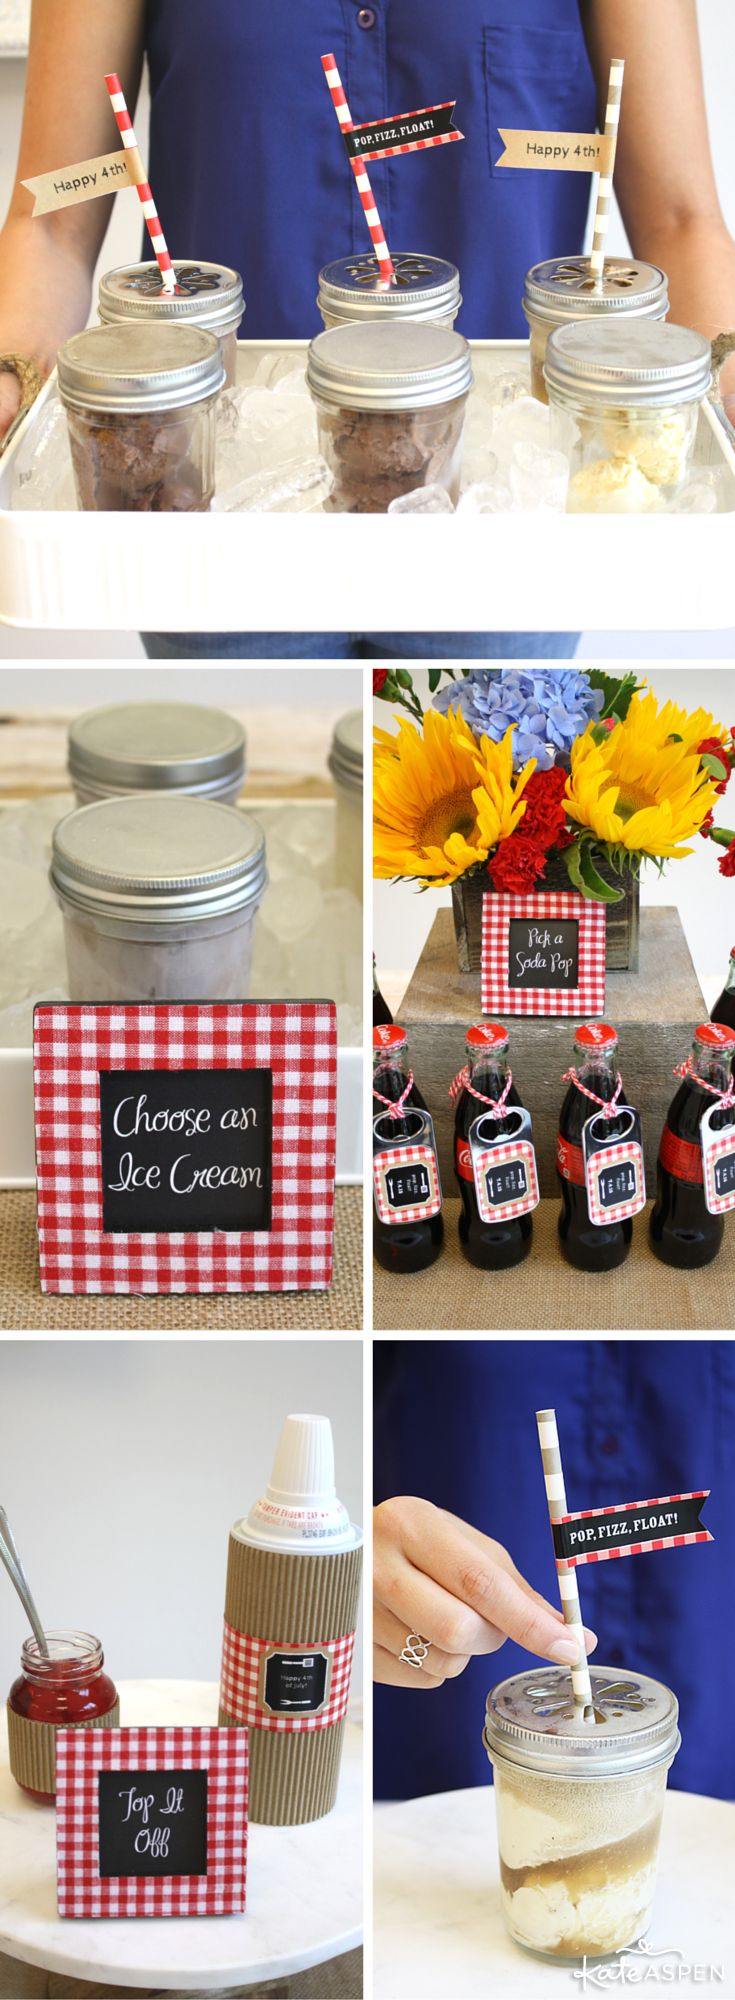 75 best backyard barbecue baby q shower images on pinterest